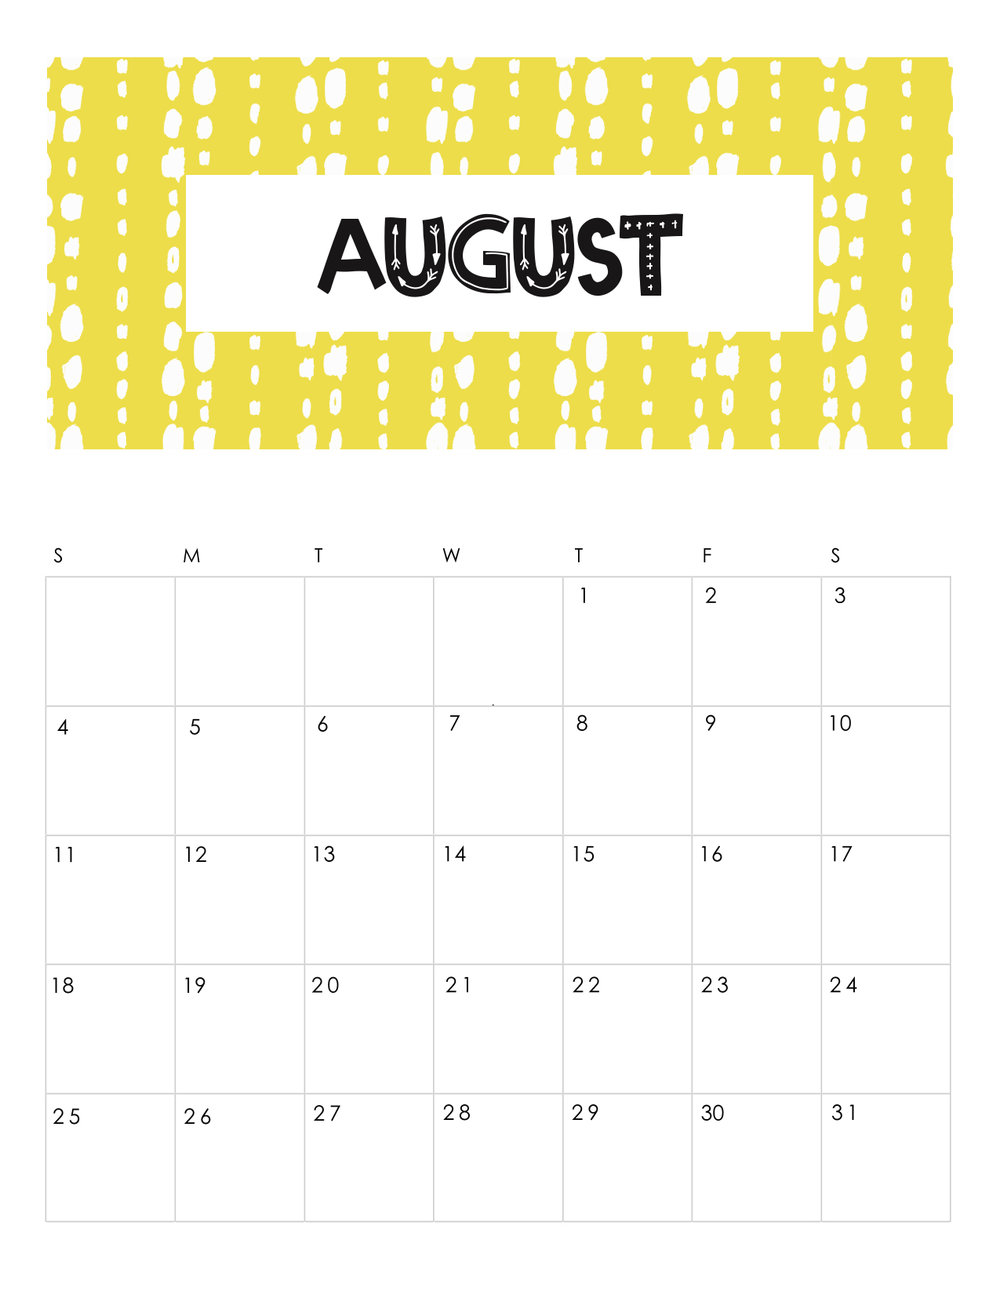 free-printable-abstract-patterned-calendar-2019-august.jpg